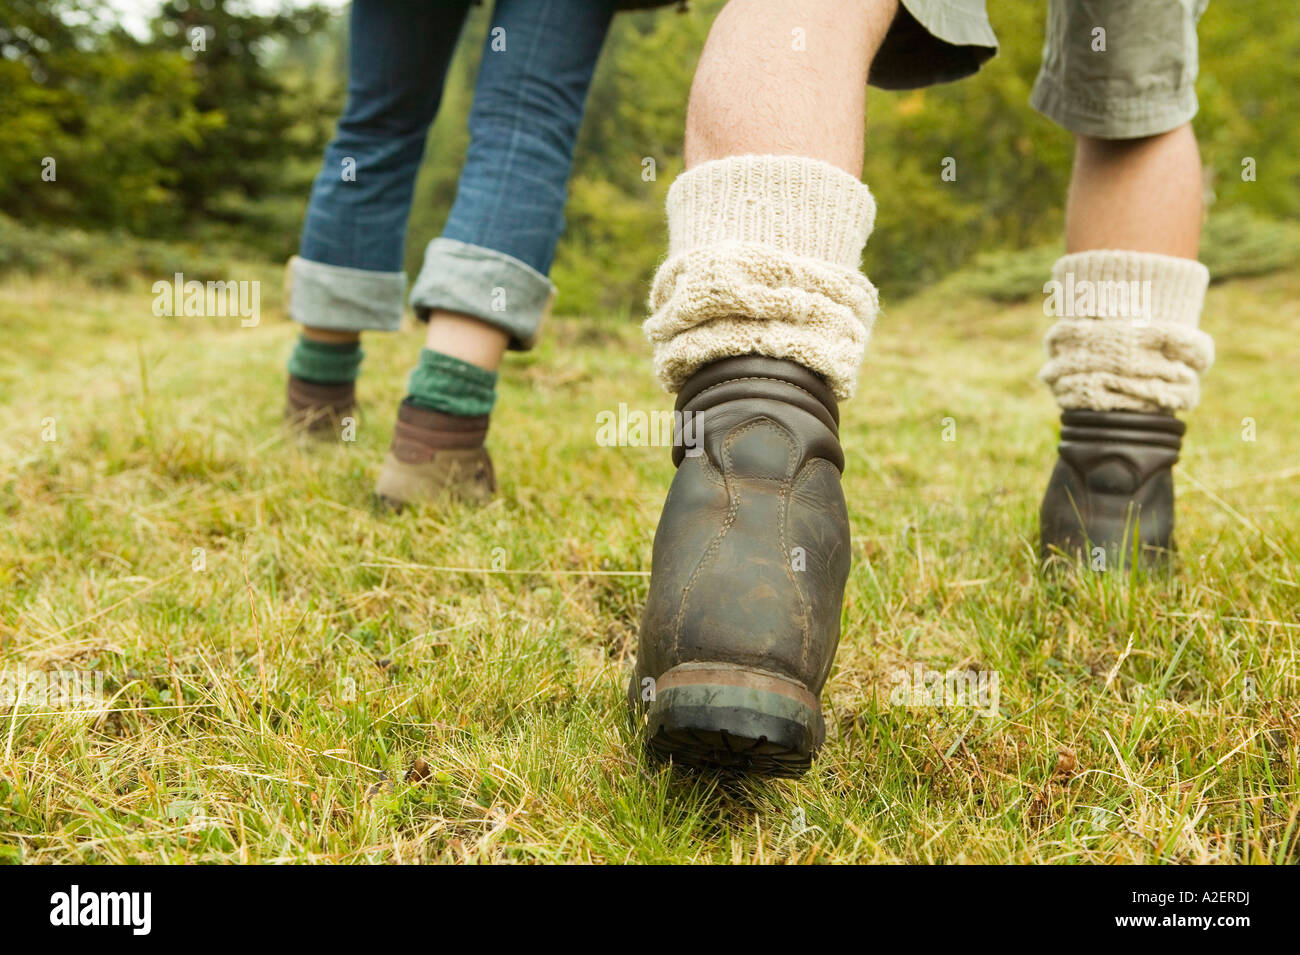 Two persons walking in meadow, detail - Stock Image